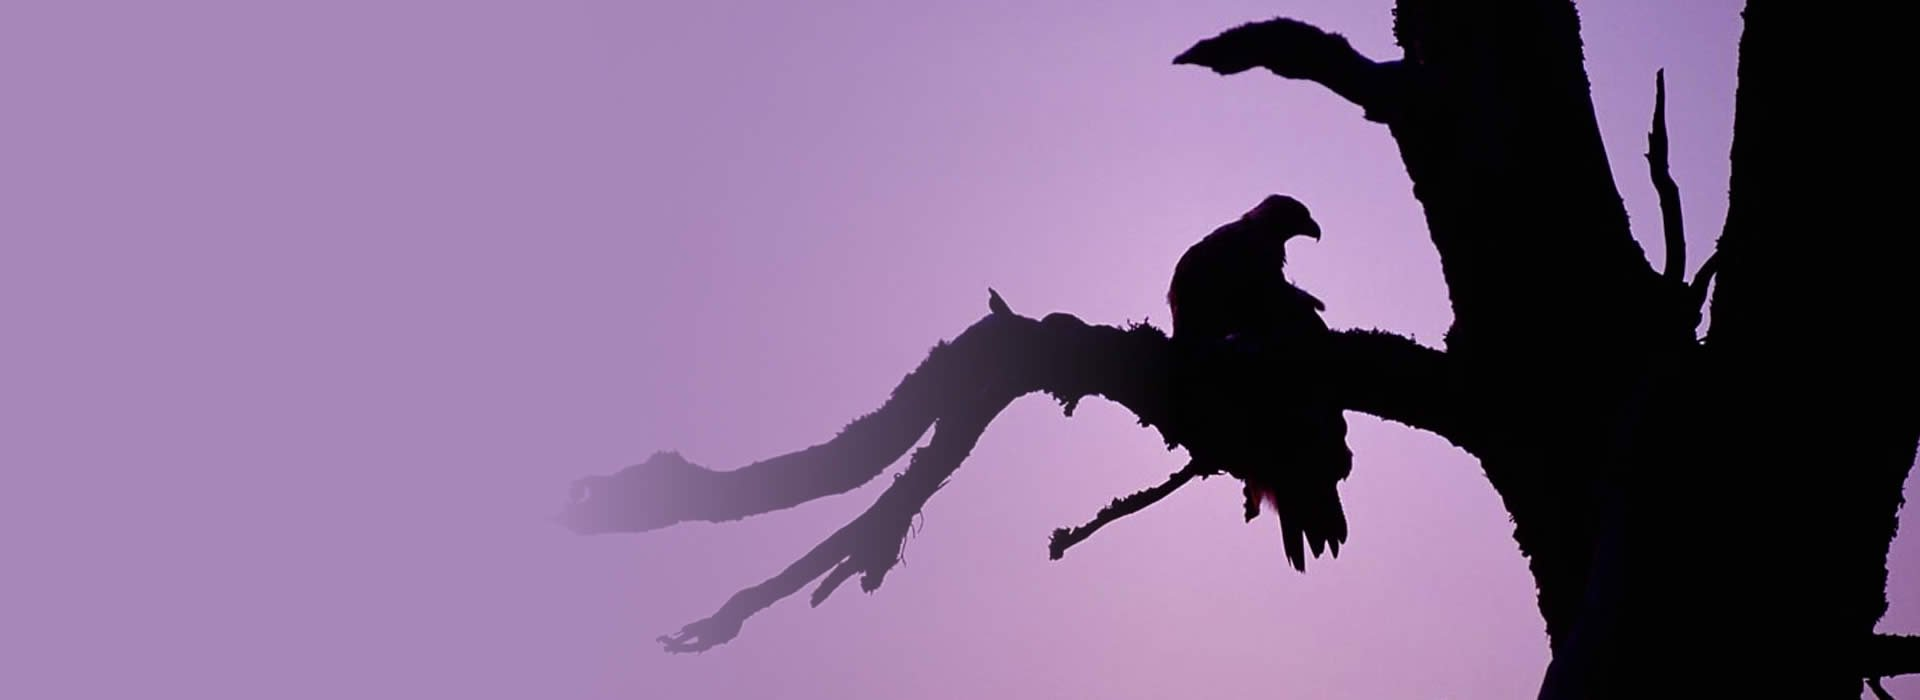 Eagle silhouette - Laurie Campbell